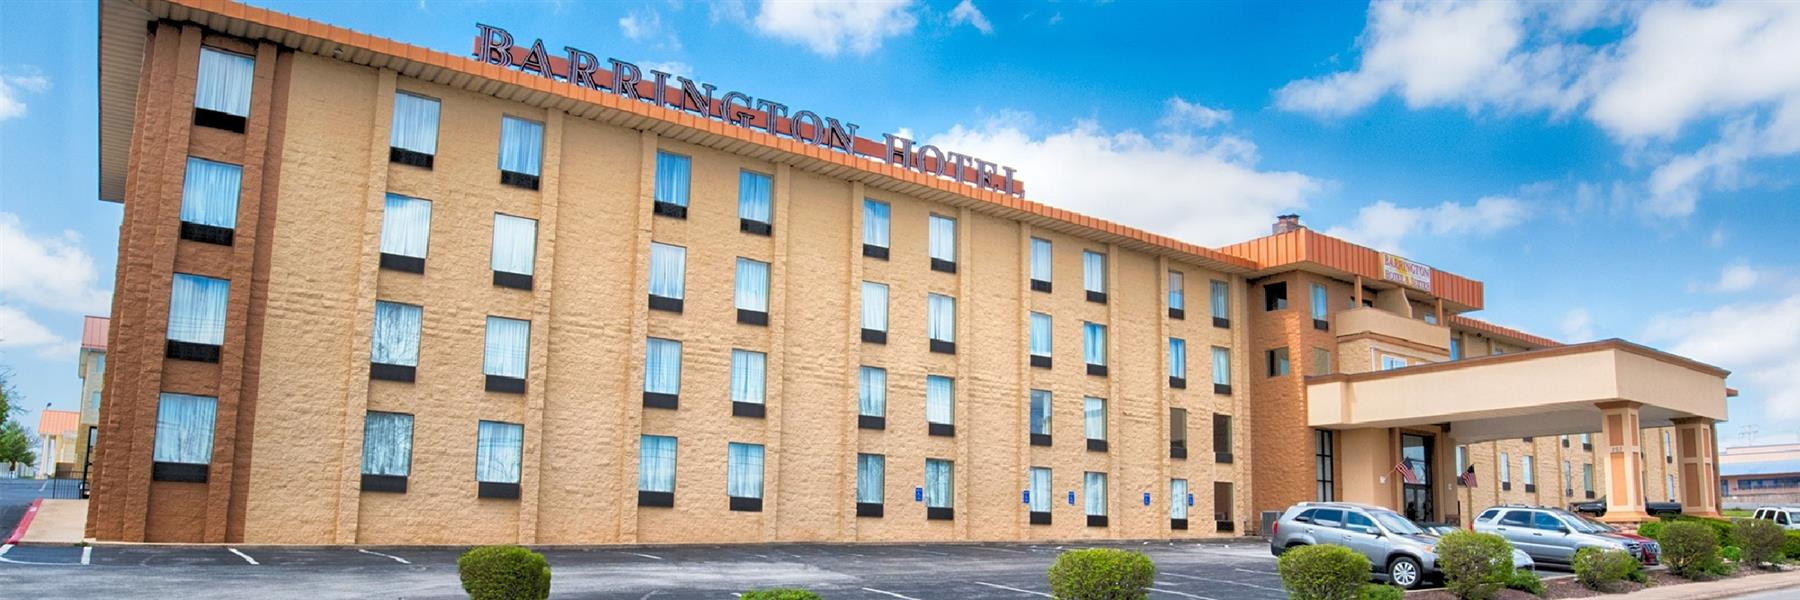 Barrington Hotel & Suites in Branson, Missouri